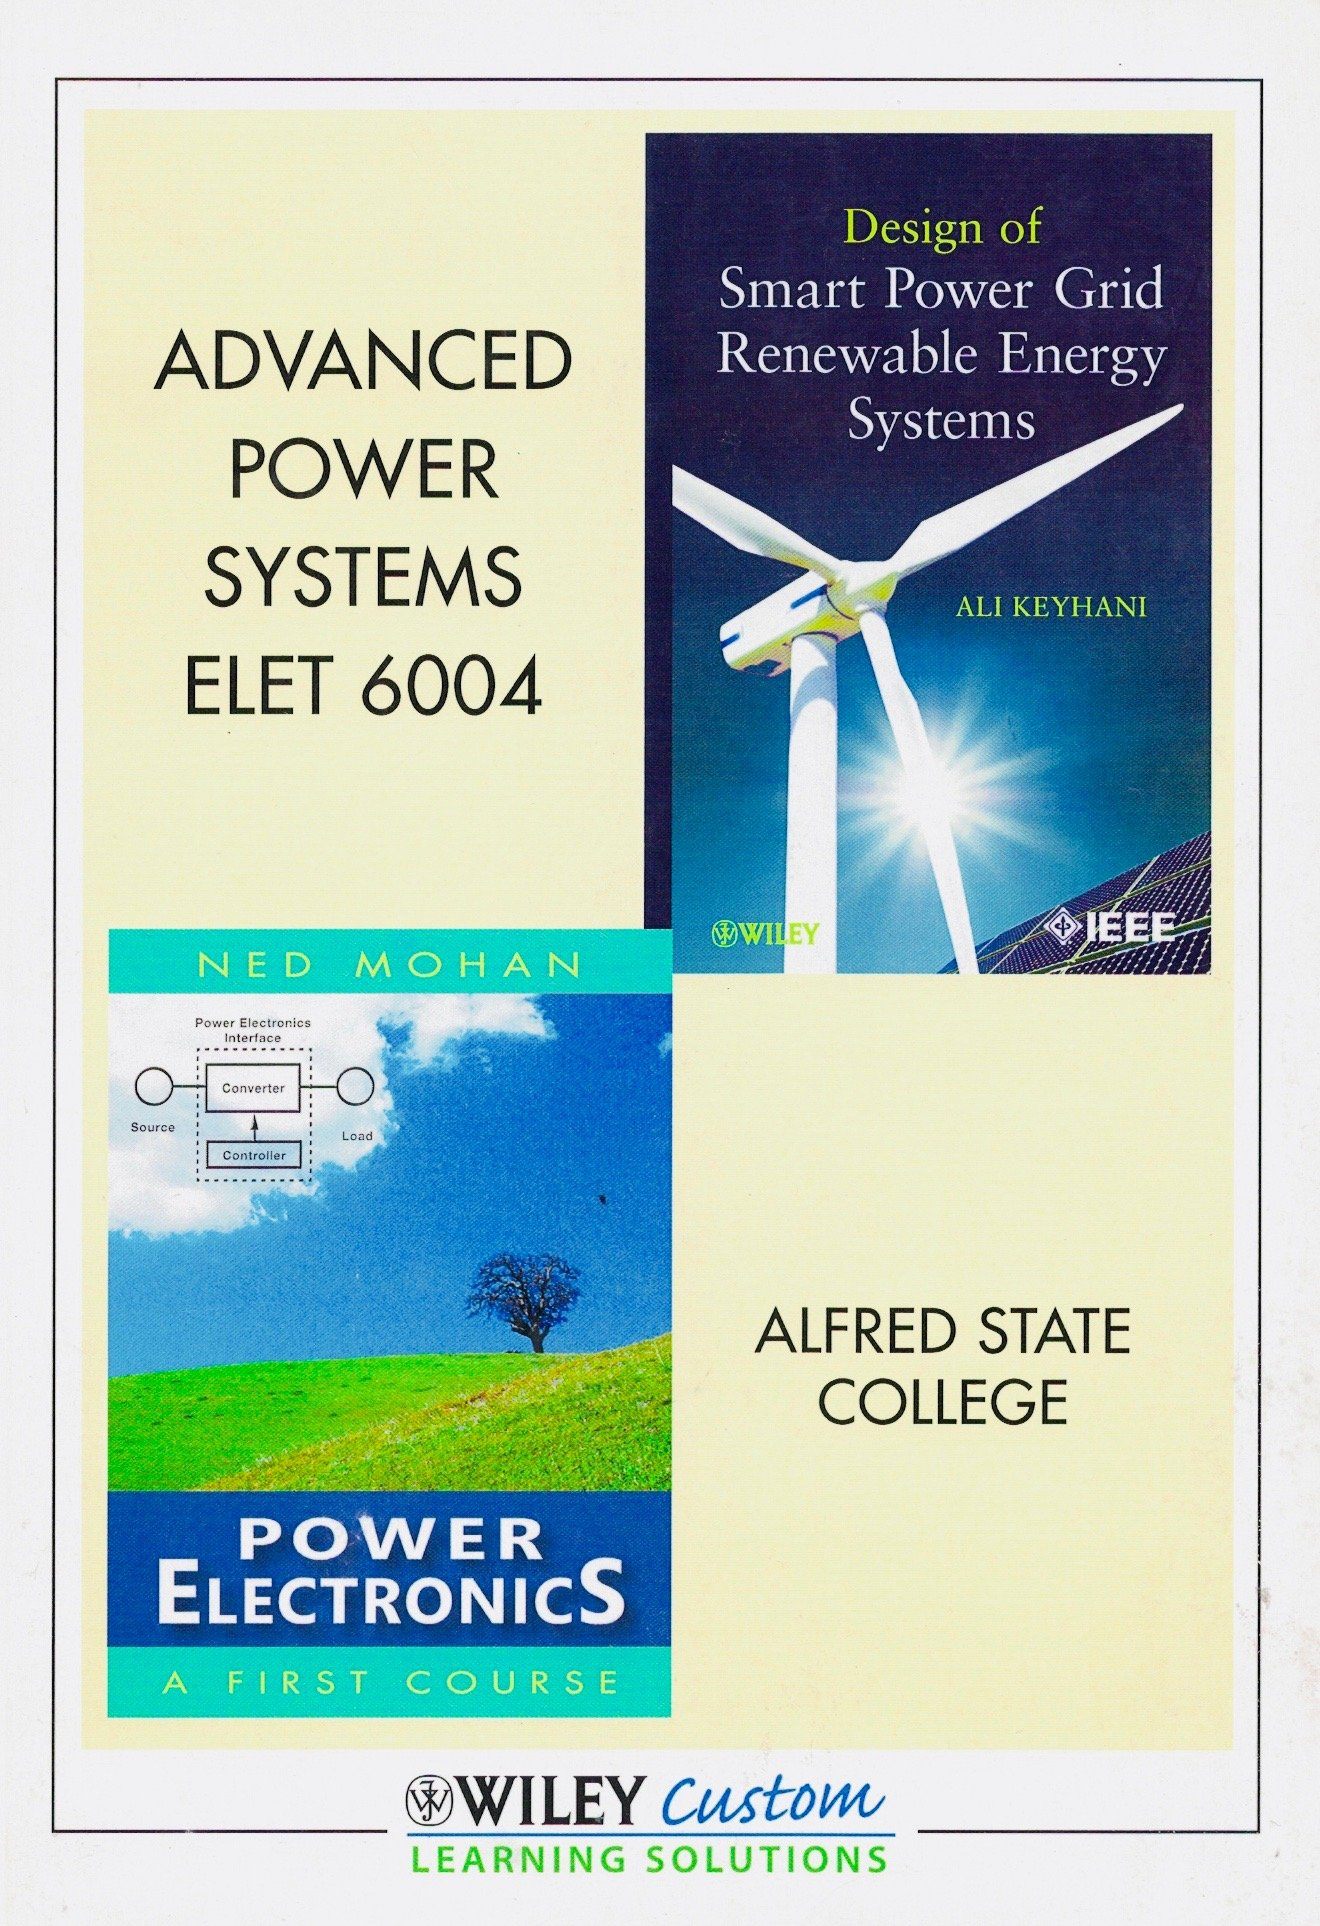 Advanced Power Systems Elet 6004 Alfred State College Custom Edition Design Of Smart Power Grid Renewable Energy Systems Power Electronics A First Course Ali Keyhani Ned Mohan 9781118335796 Amazon Com Books